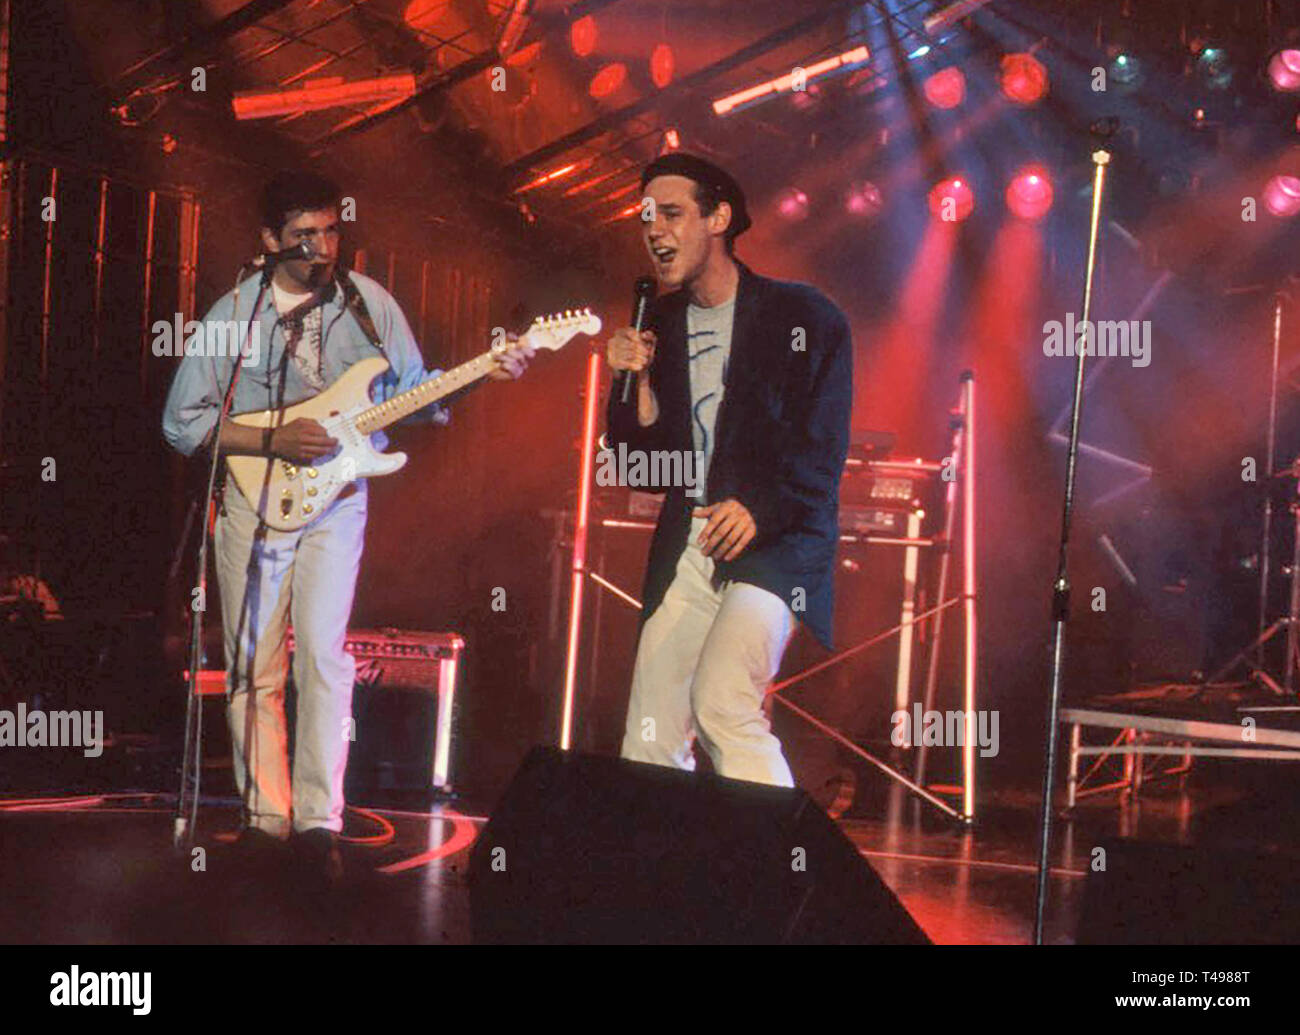 CURIOSITY KILLED THE CAT British pop band about about 1988 with lead singer Ben Volpeliere Stock Photo